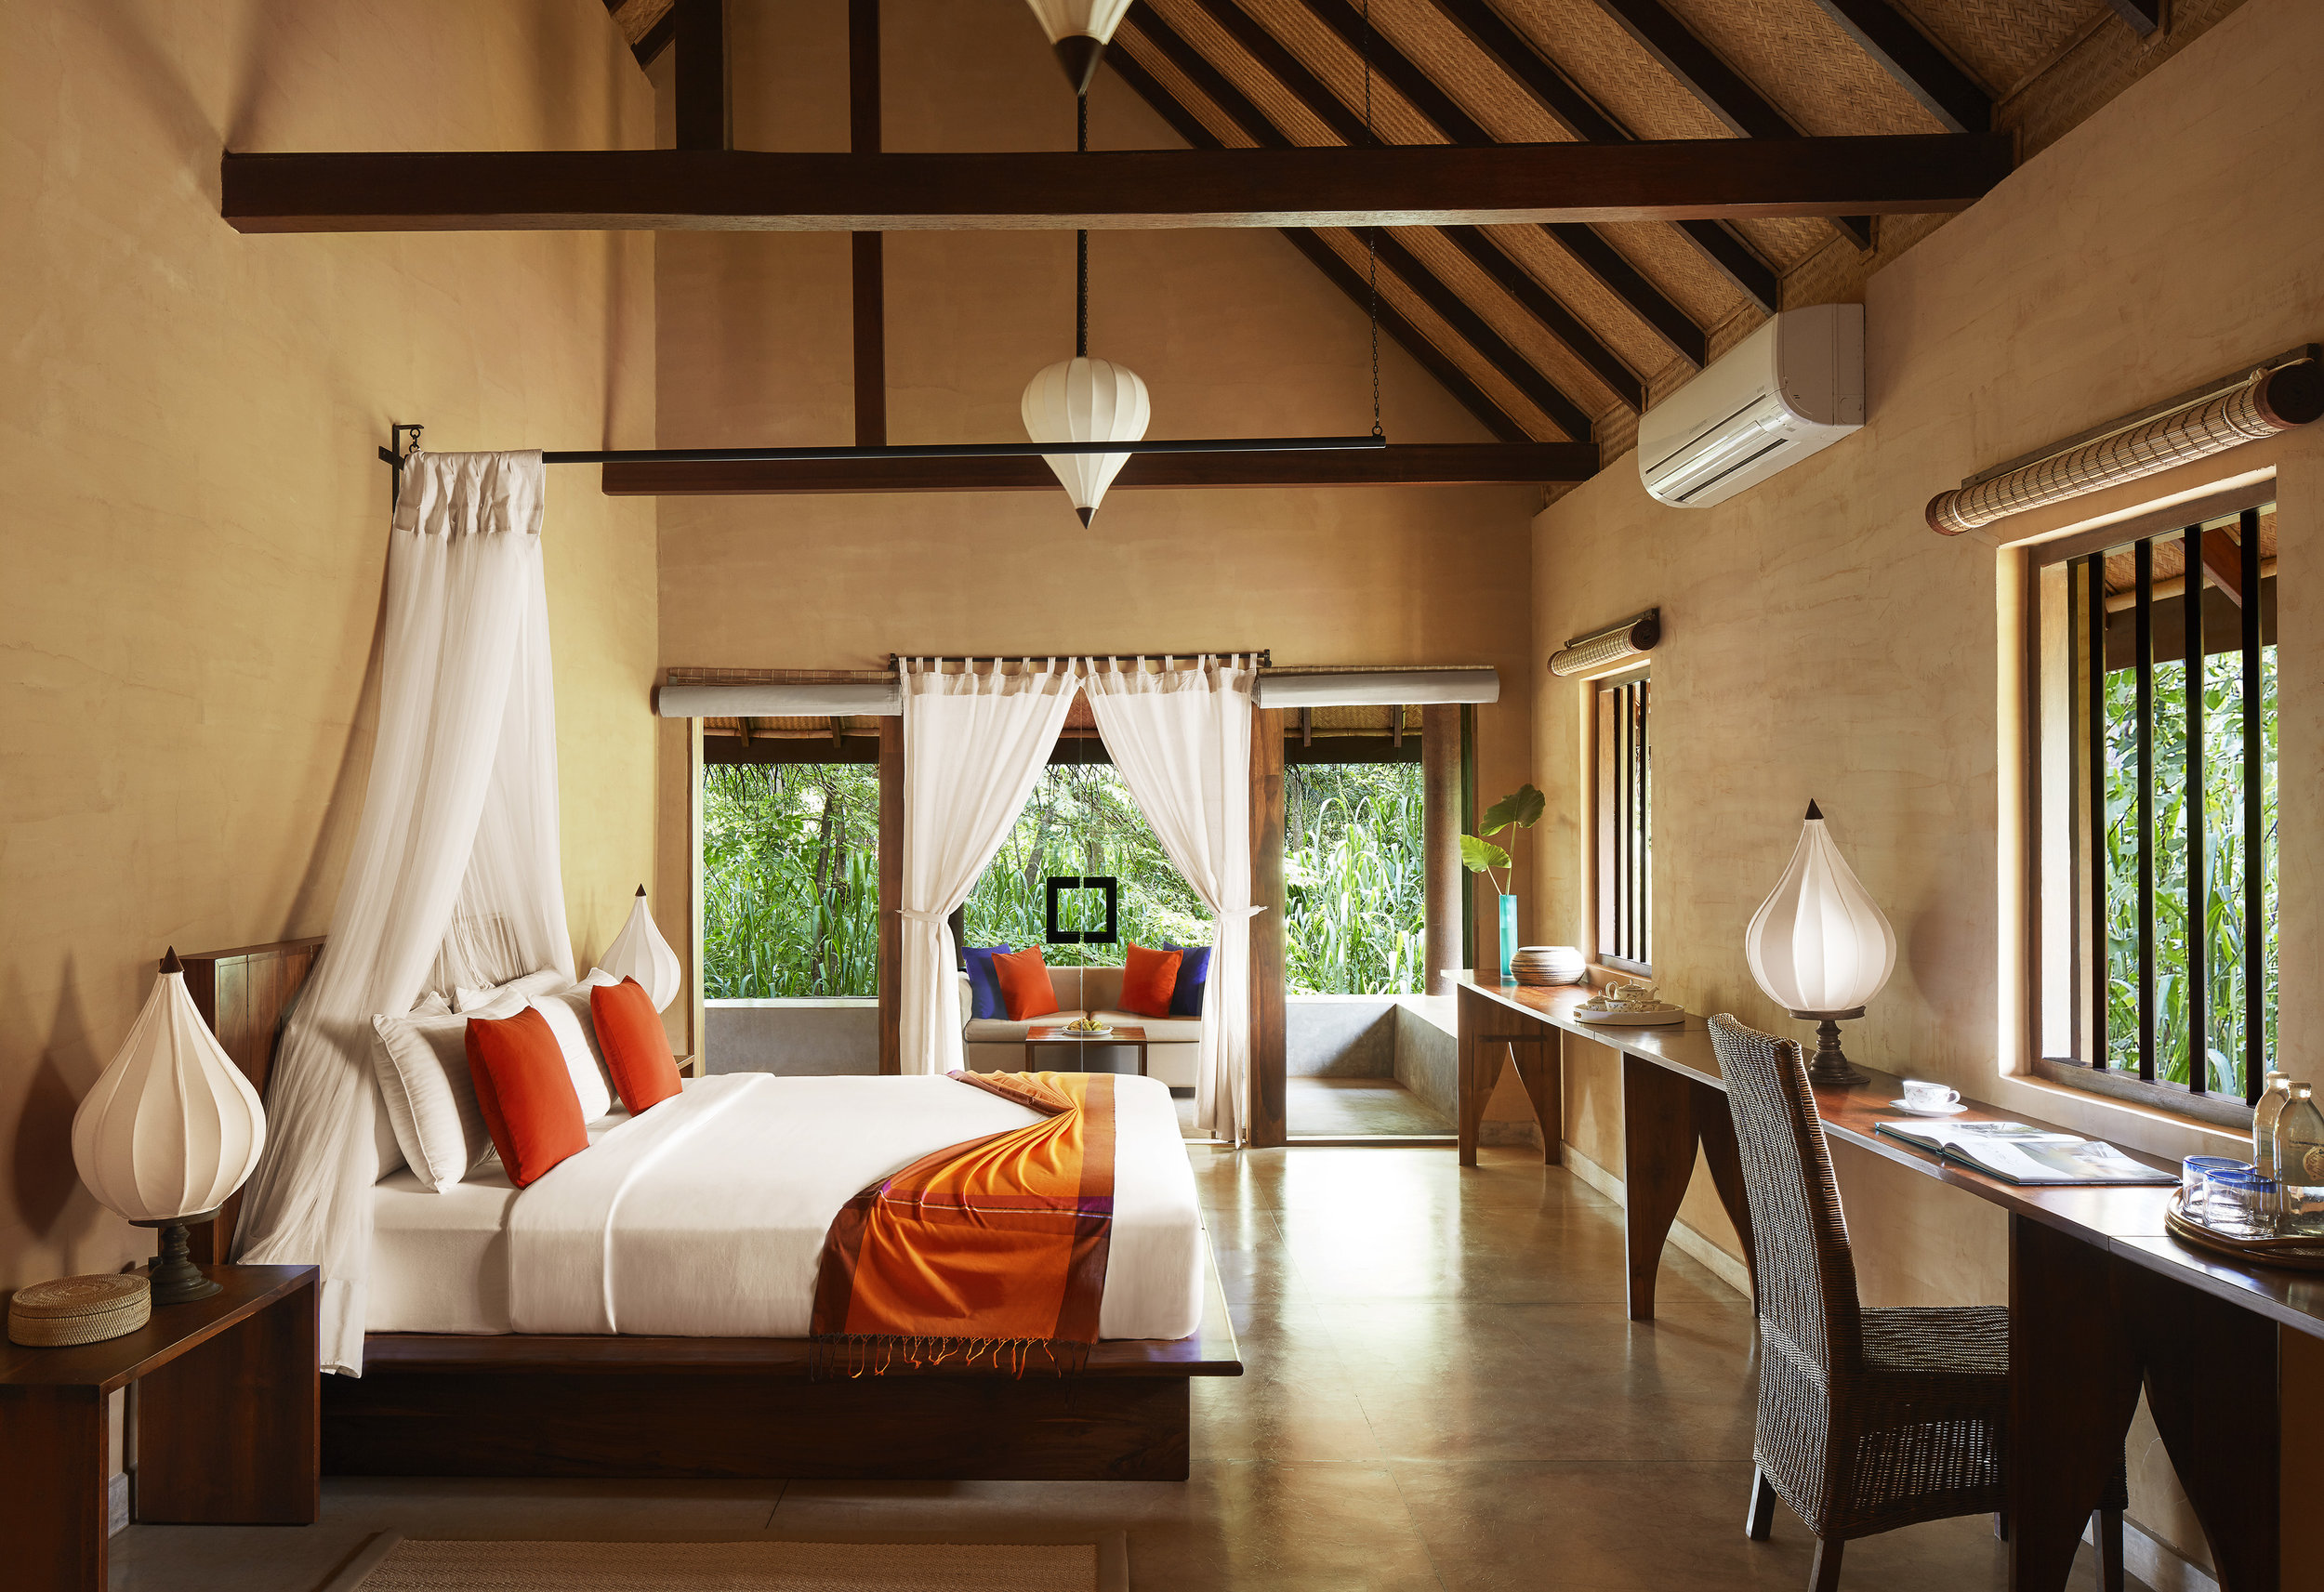 invite-to-paradise-sri-lanka-specialists-experts-travel-agent-tour-operator-jetwing-viluyana-hotel-cultural-triangle-dwelling-bedroom-garden.jpg